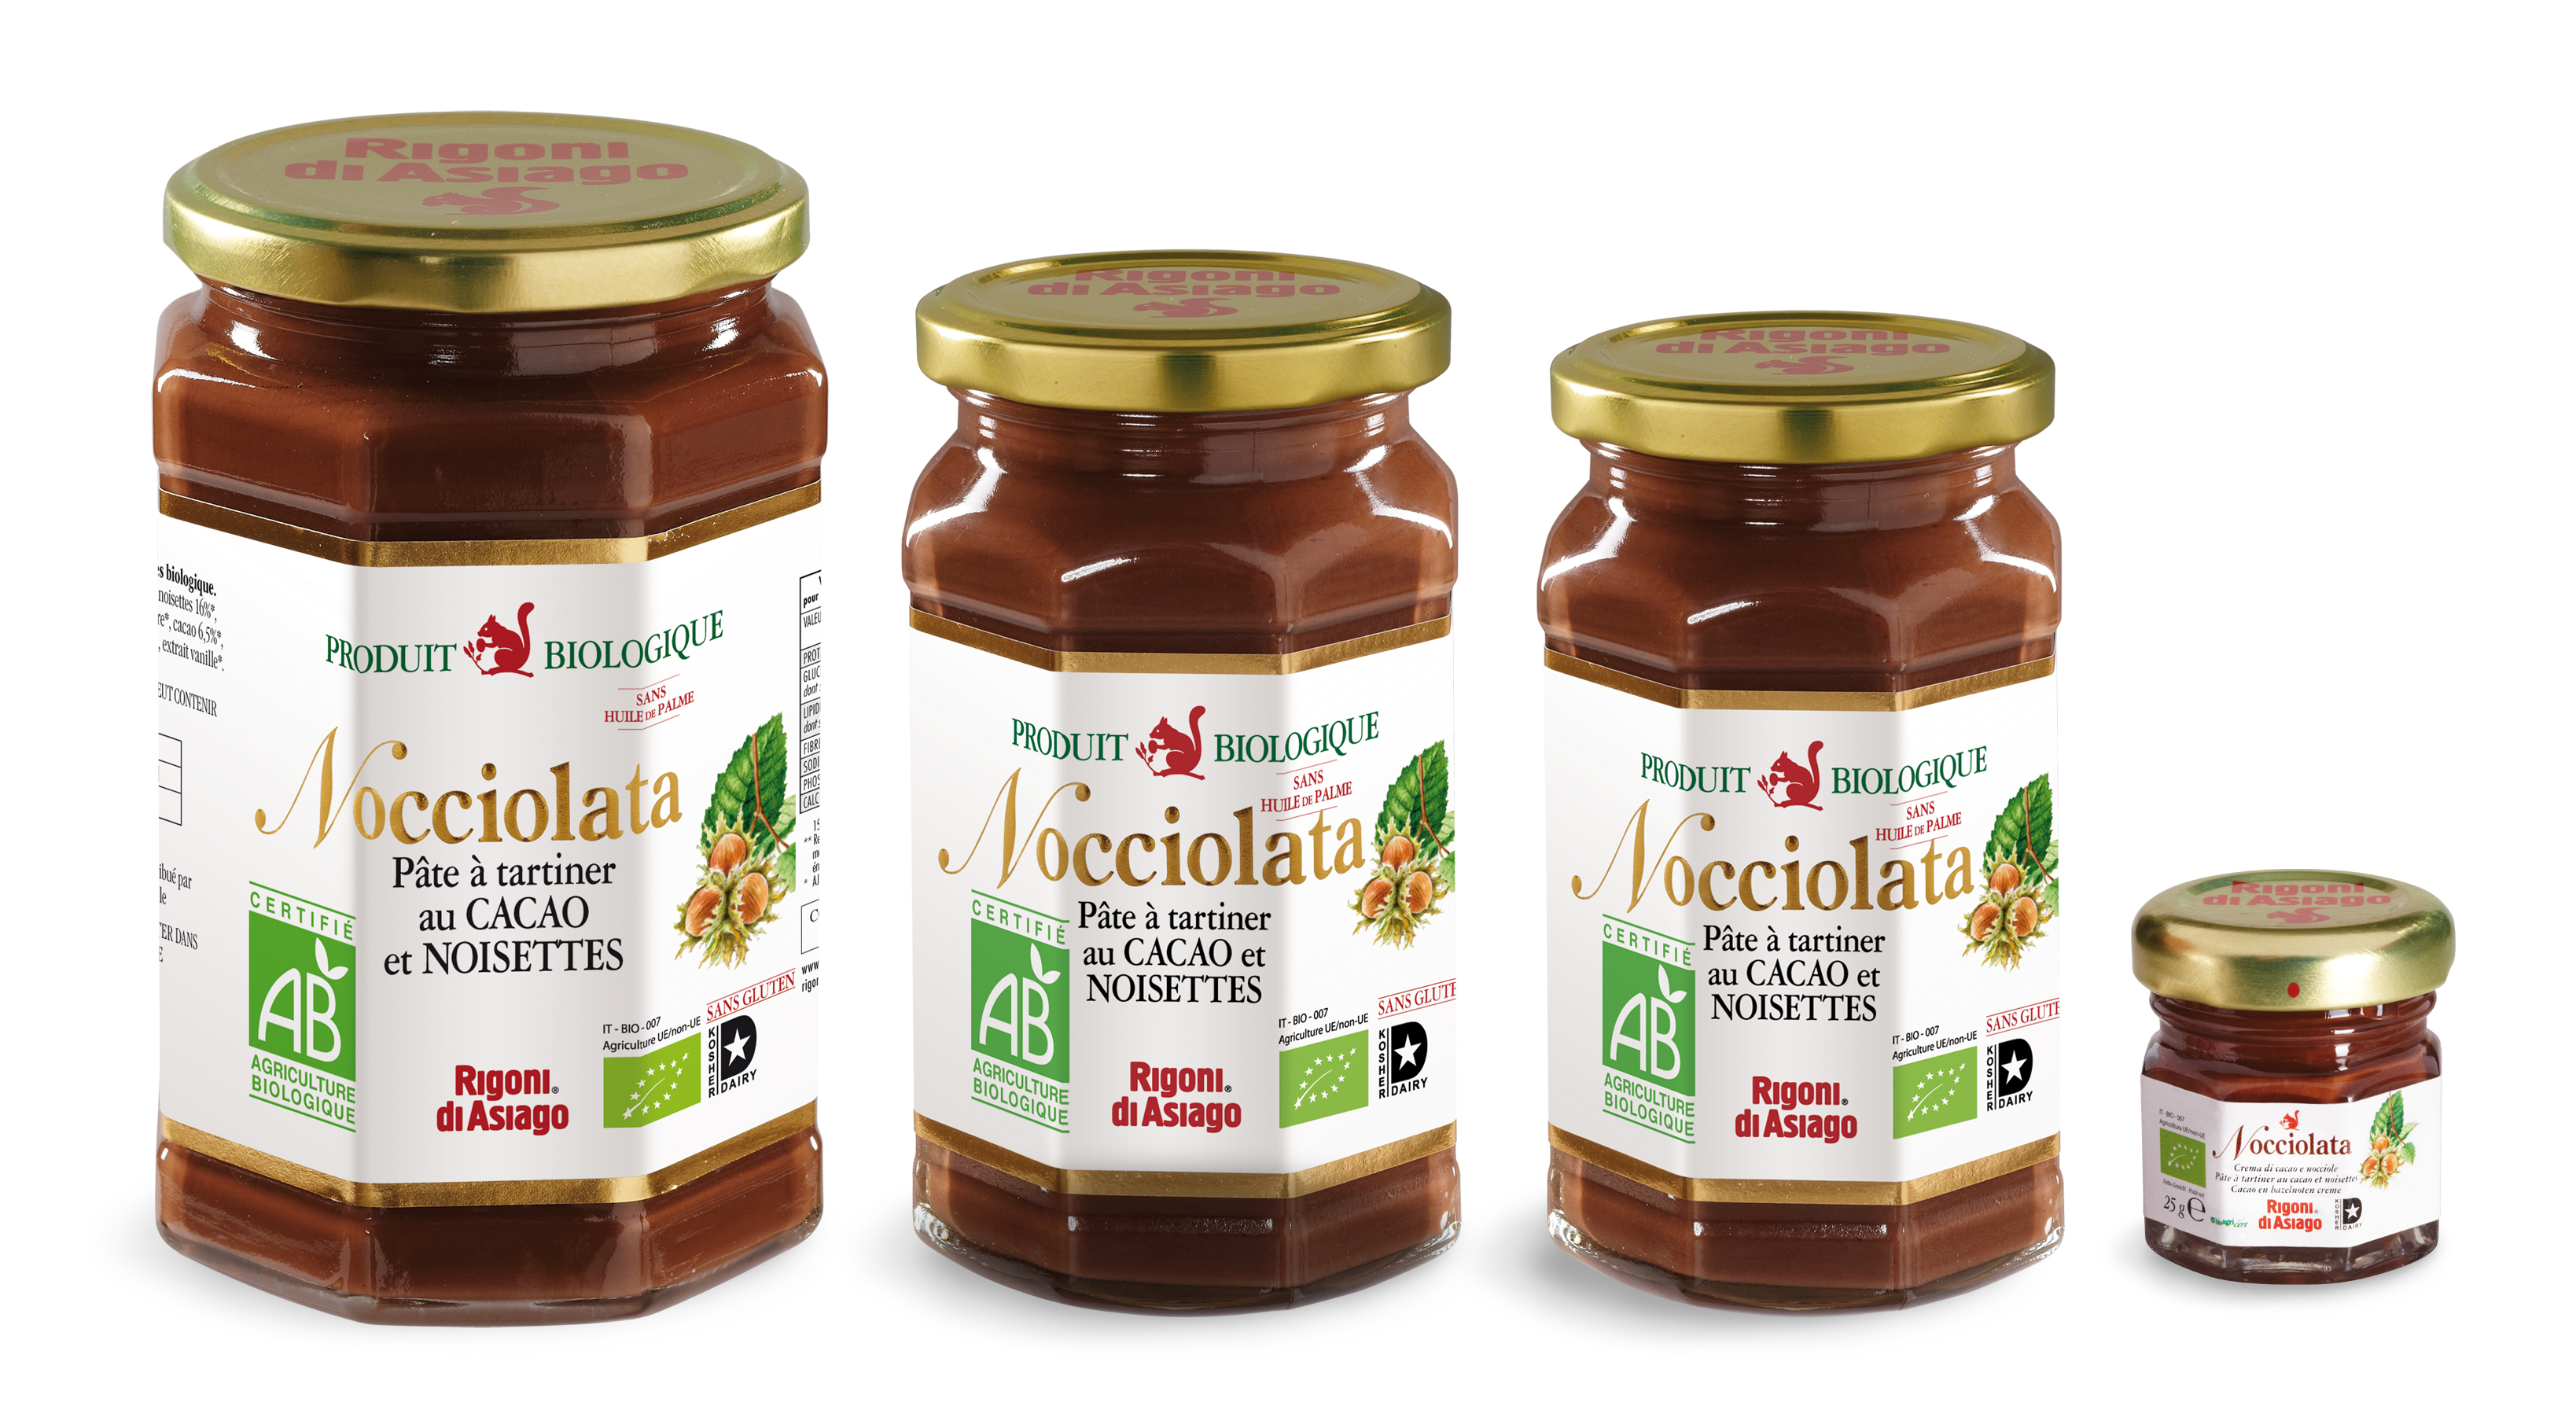 nocciolata - the pate a tartiner chocolat noisette bio comme le nutella